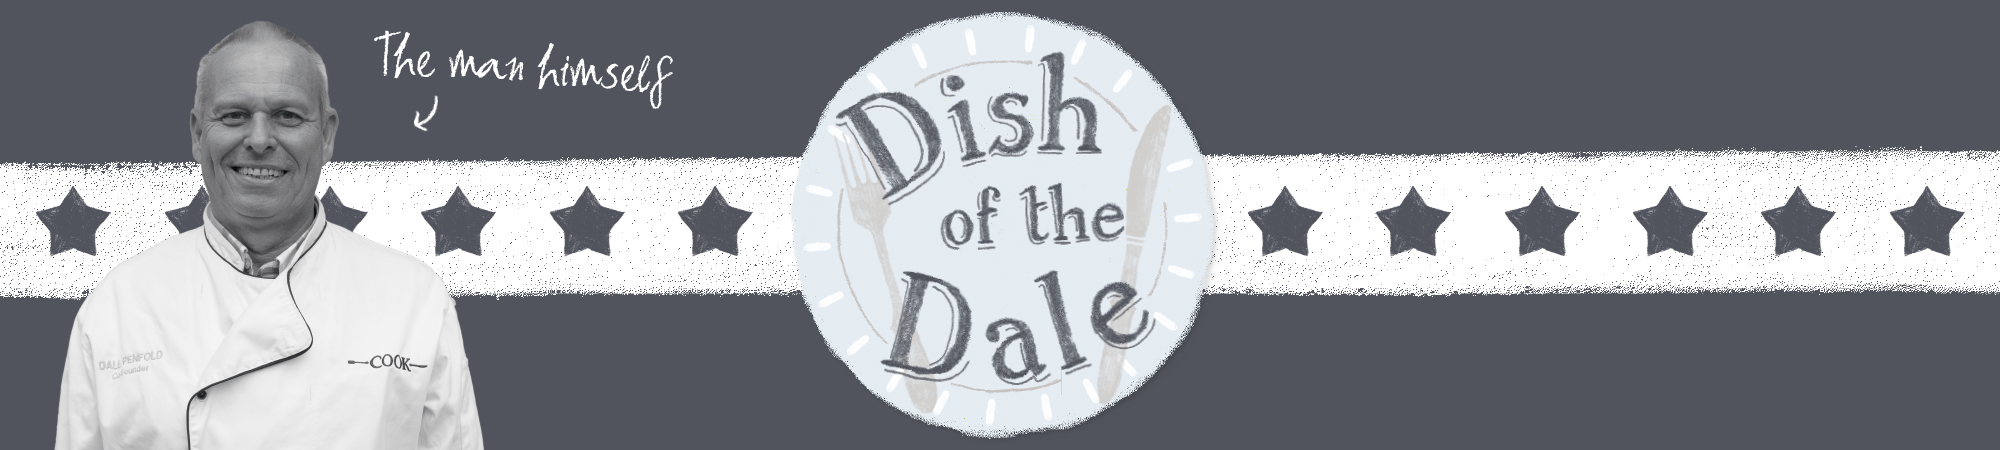 Dish of the Dale